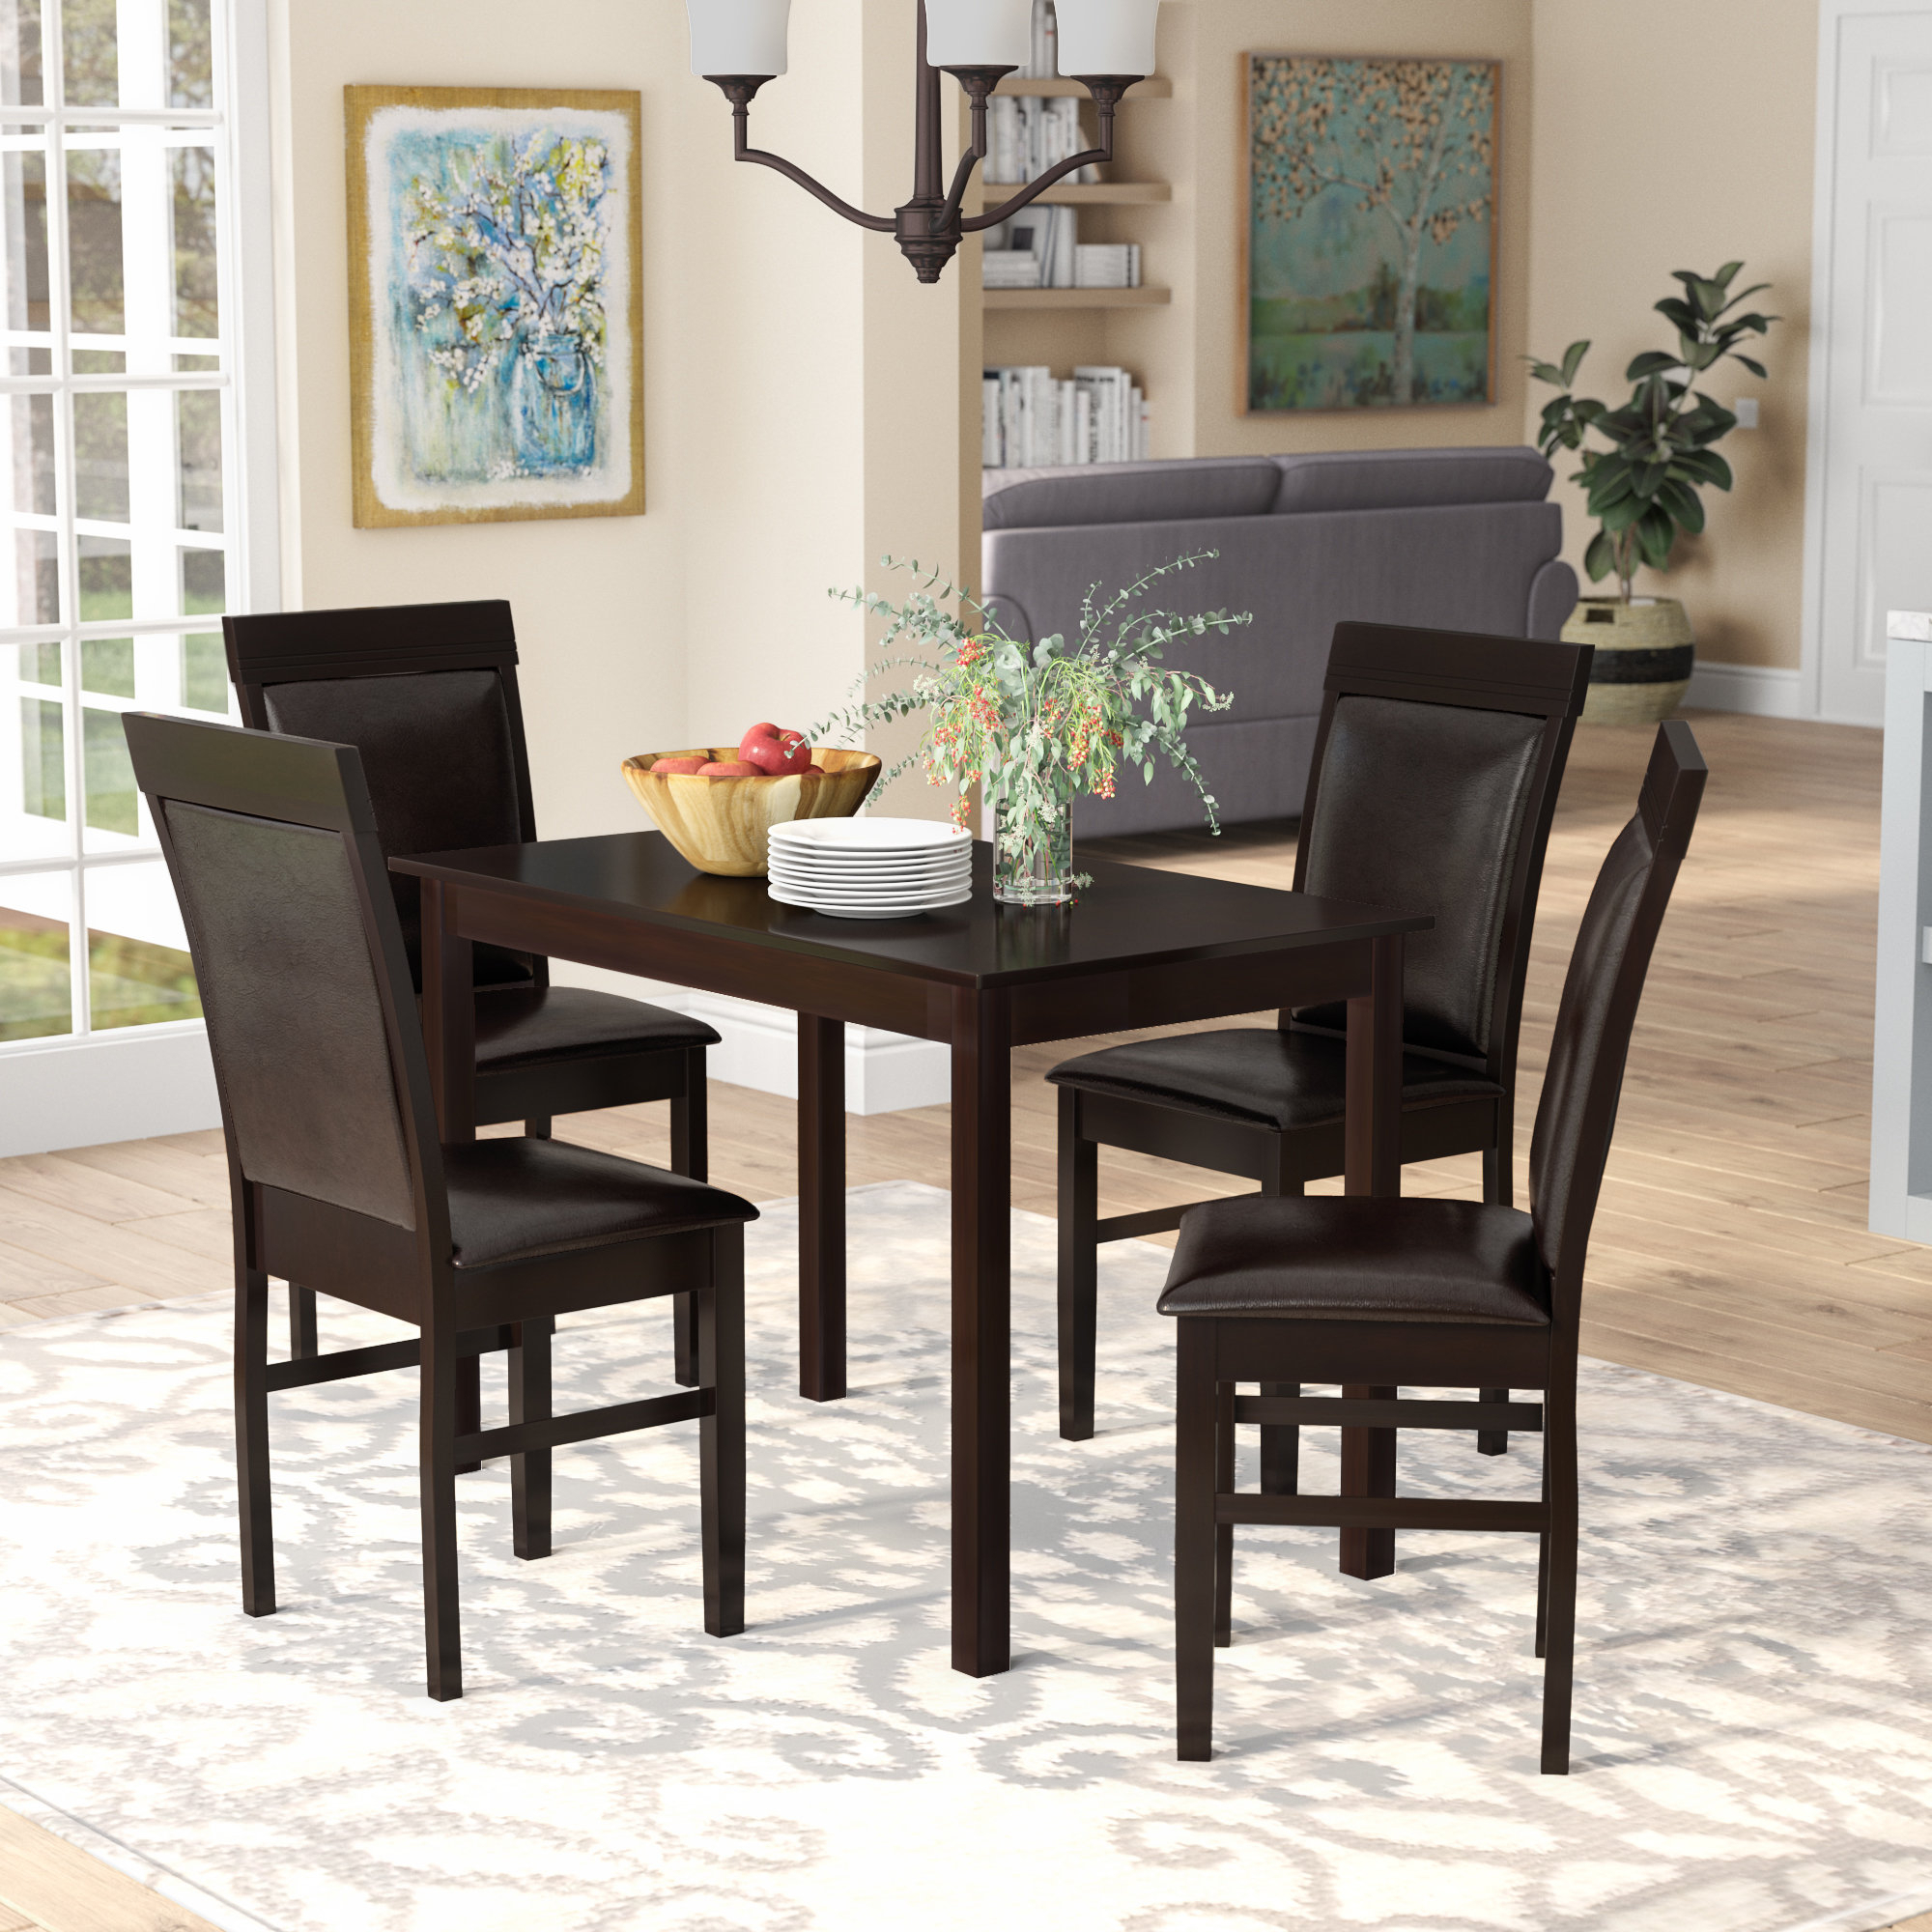 2017 5 Piece Breakfast Nook Dining Sets Throughout Kisor Modern And Contemporary 5 Piece Breakfast Nook Dining Set (Gallery 4 of 20)